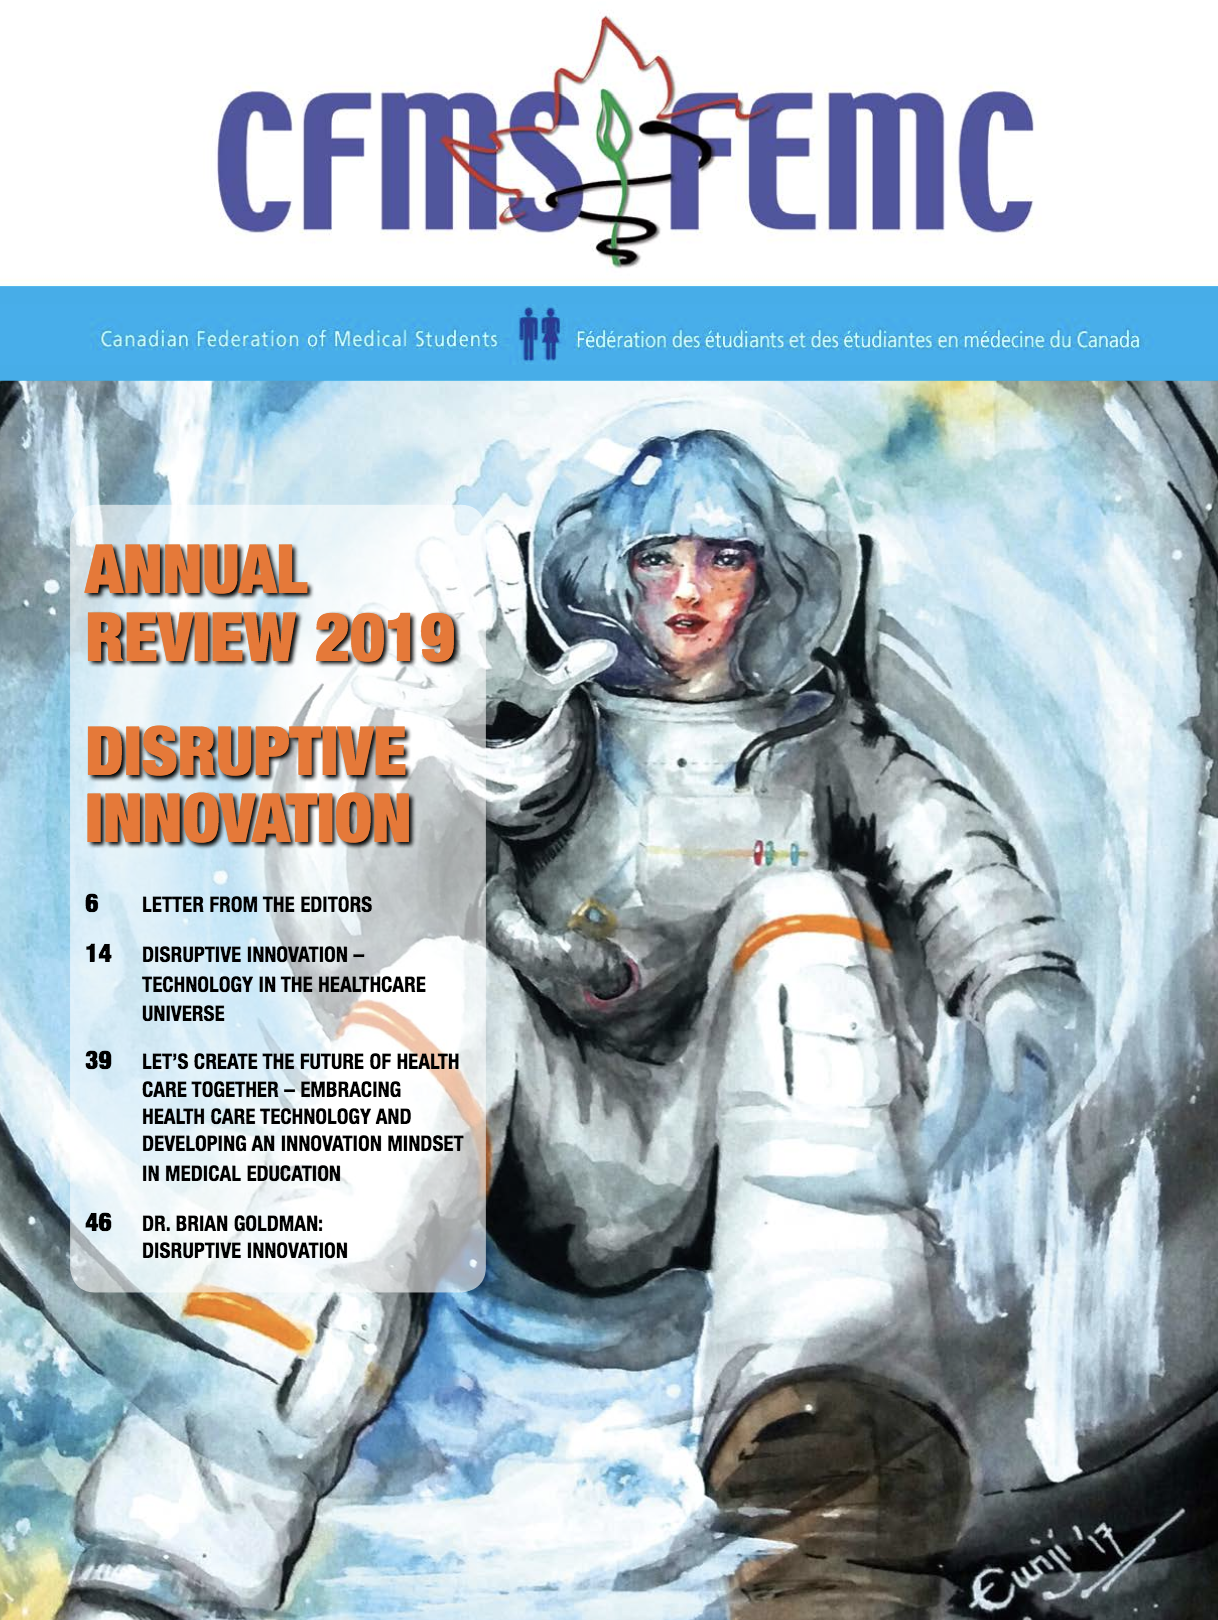 ANNUAL REVIEW 2019 DISRUPTIVE INNOVATION